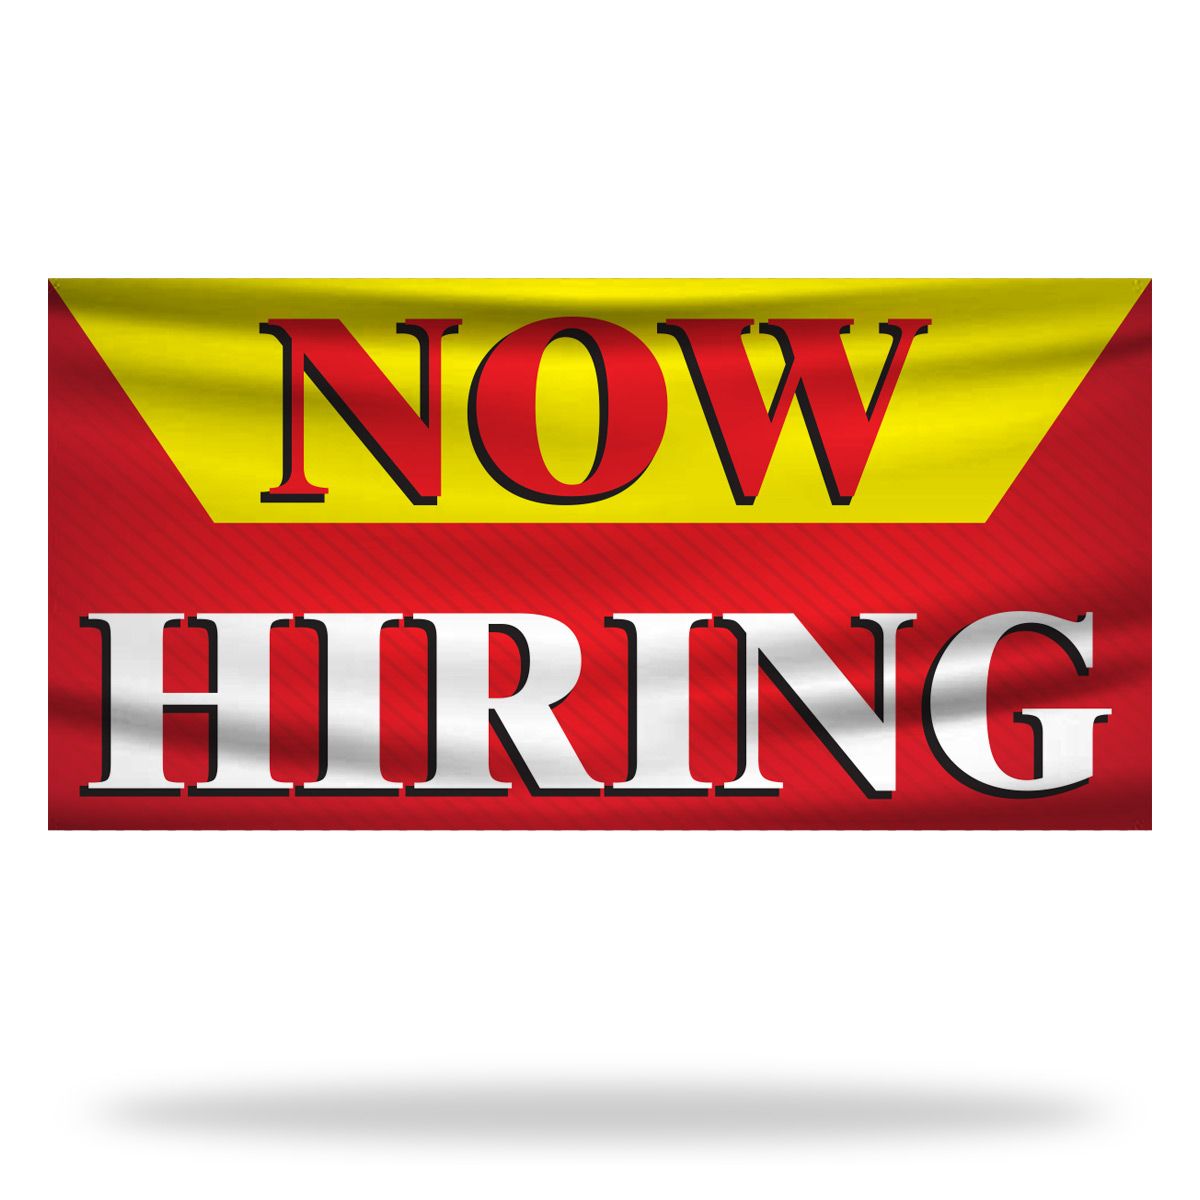 Now Hiring Flags & Banners Design 05